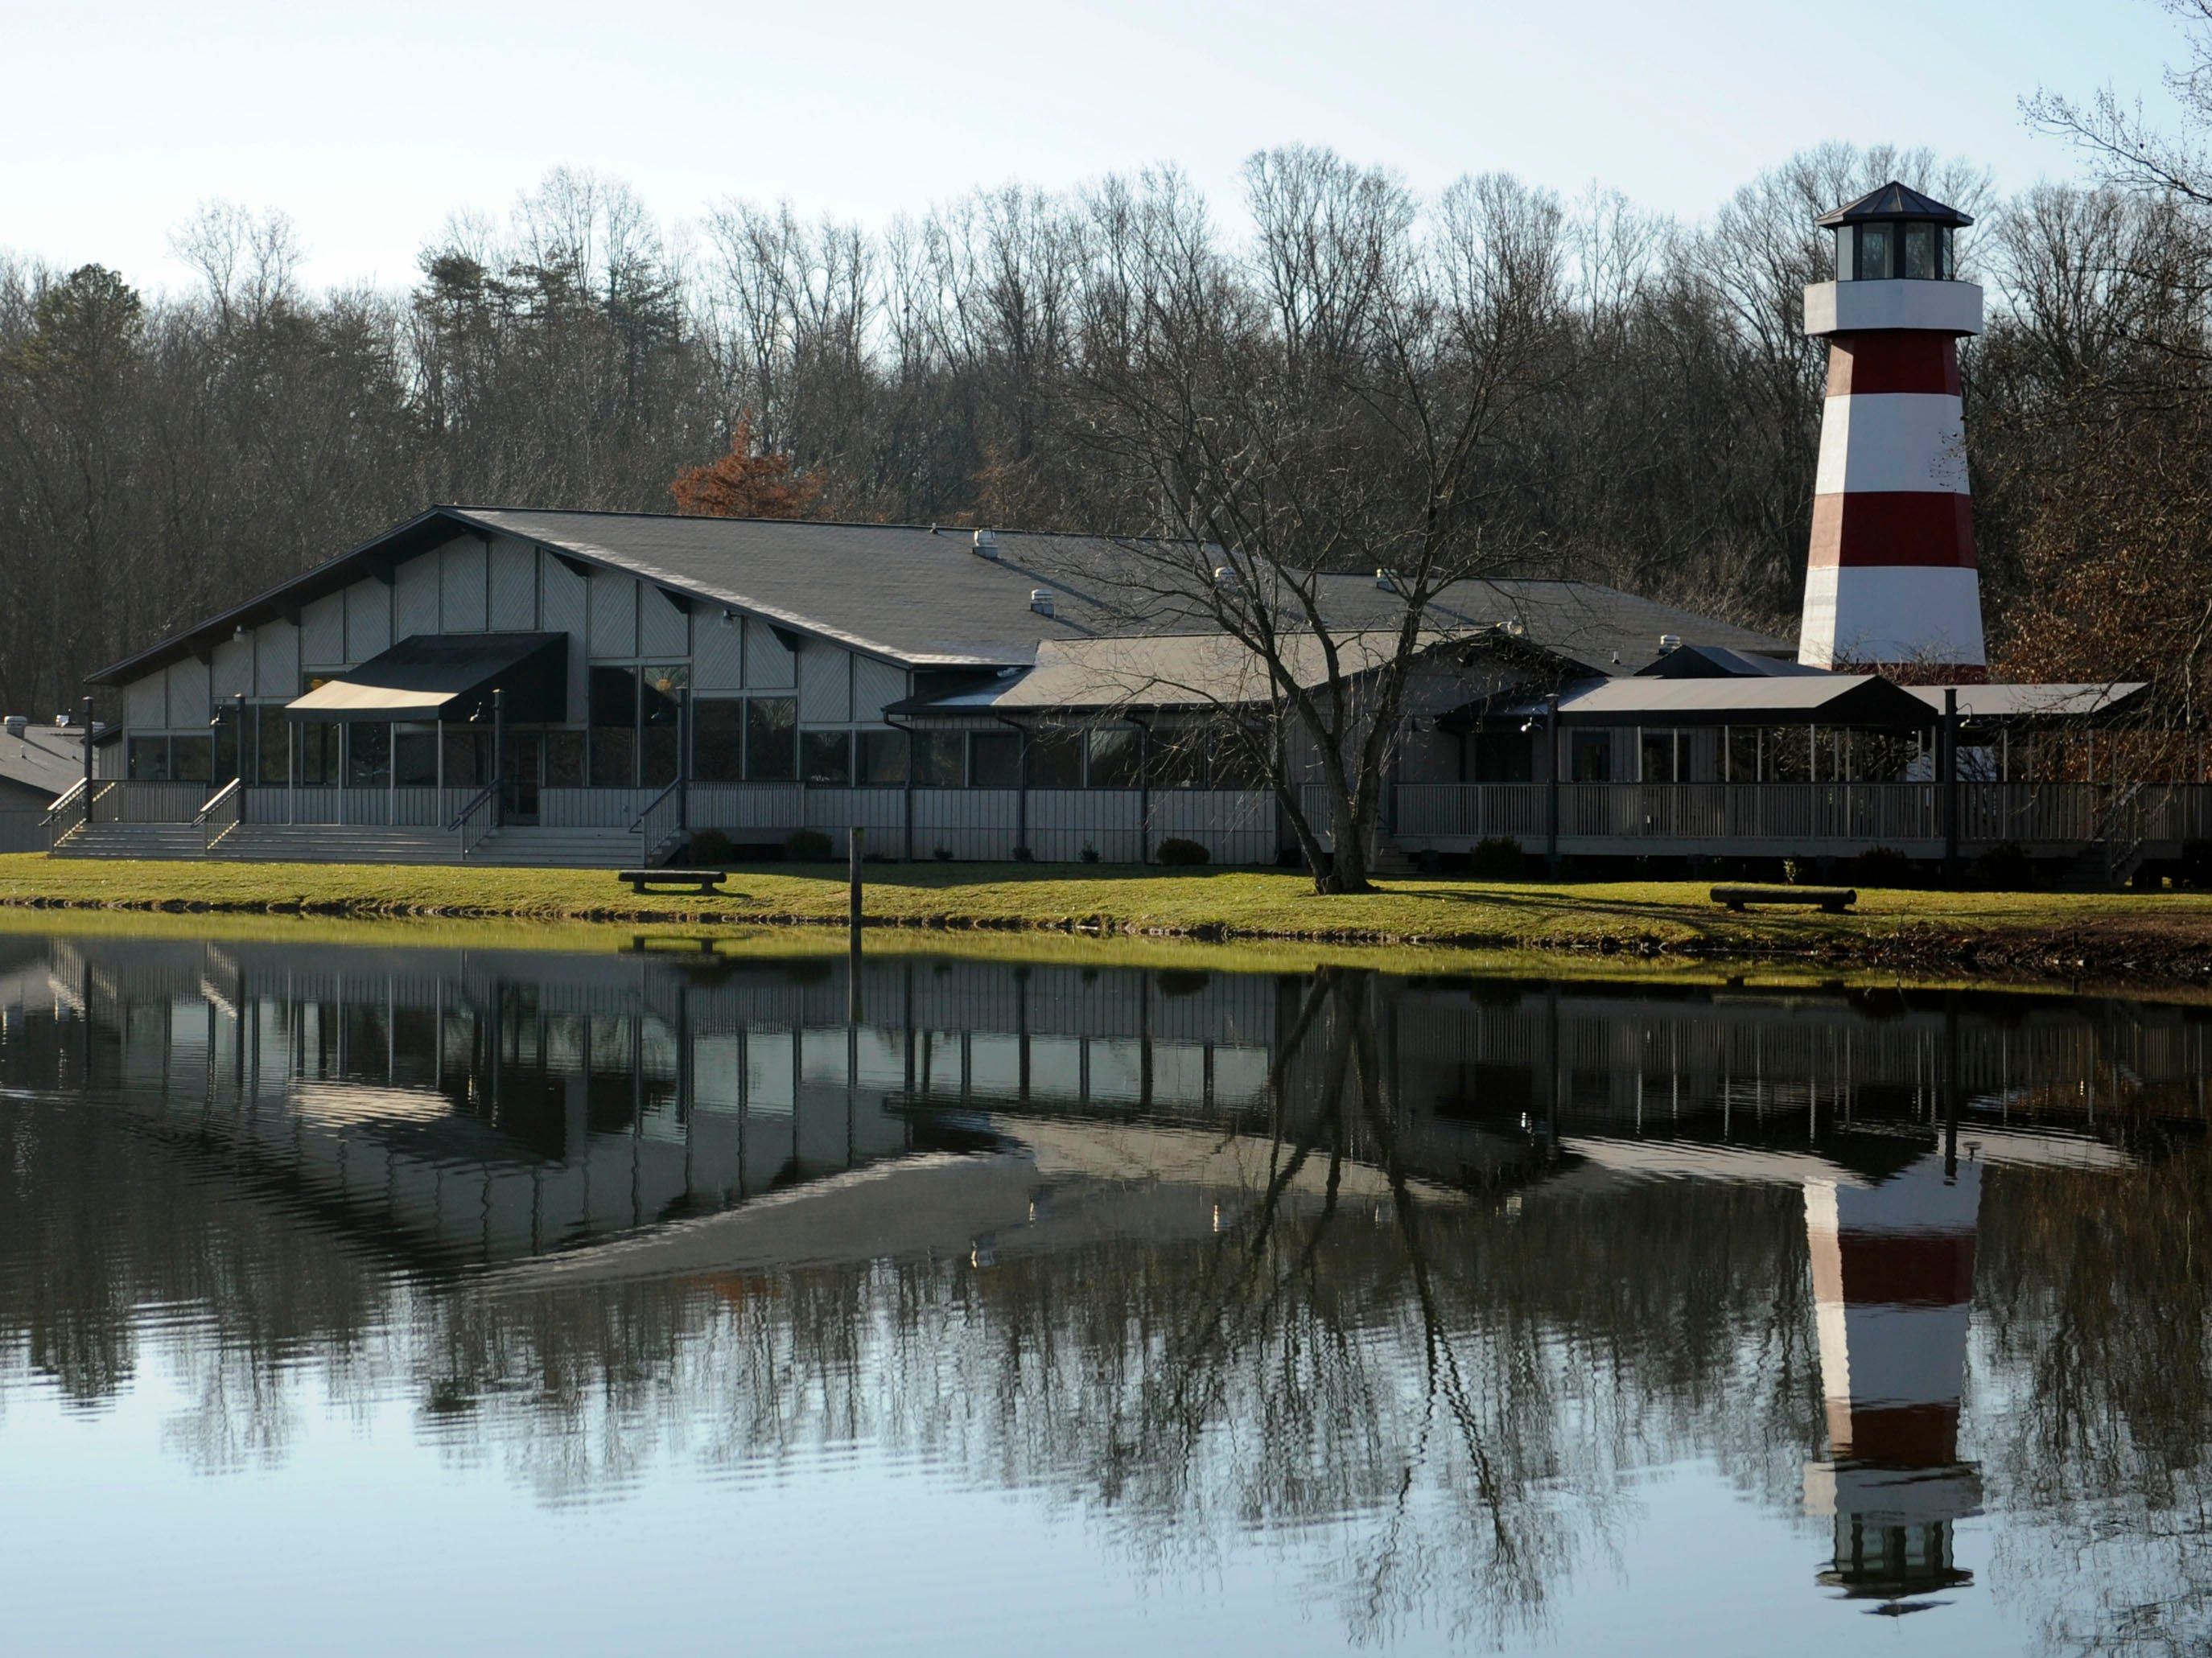 Lighthouse Knoxville, on Wednesday, Dec. 19, 2012. Formerly The Hungry Fisherman restaurant.